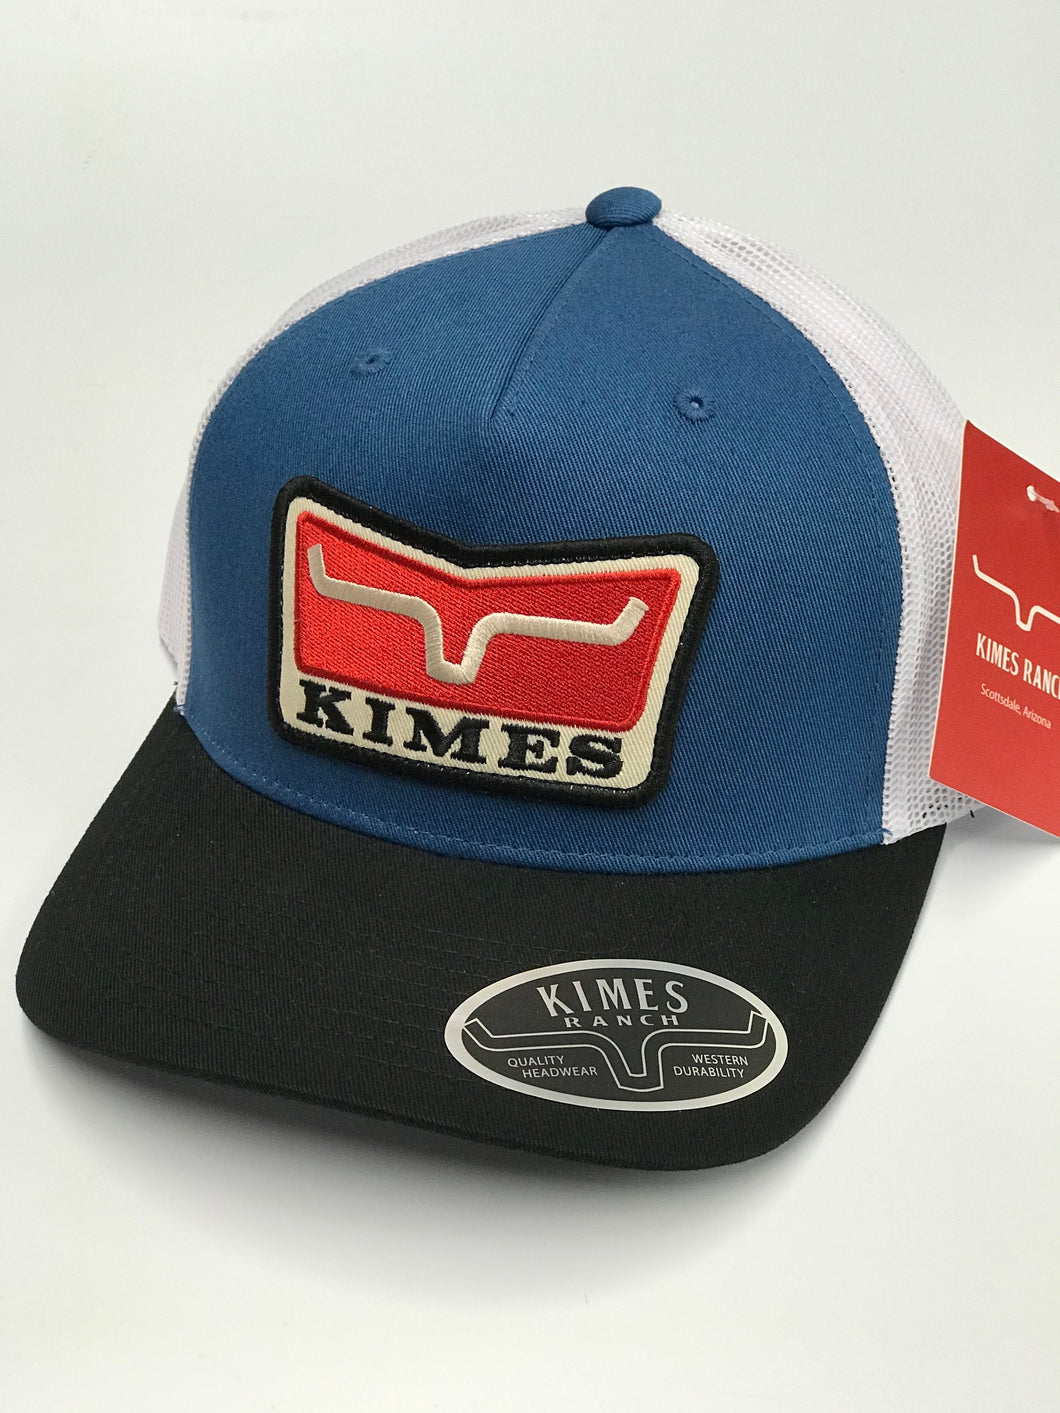 Kimes Ranch Service First Blue Trucker Cap